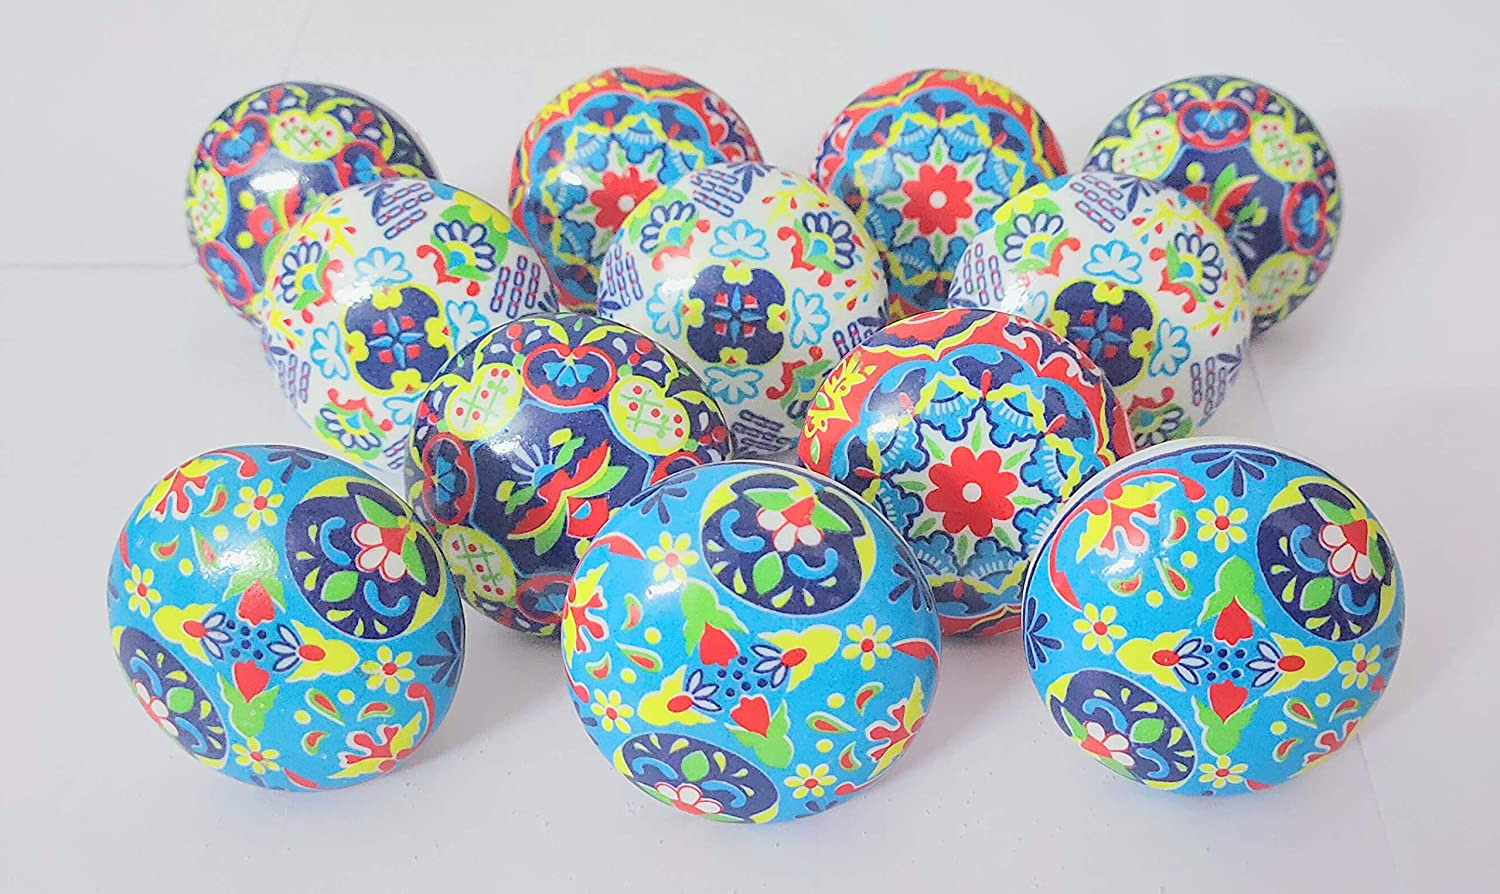 Knobs Set of 12 Ceramic Knobs Handpainted Heritage Boho Color Cabinet and Furniture Knobs Door Knobs with Proper Hardware Fitting